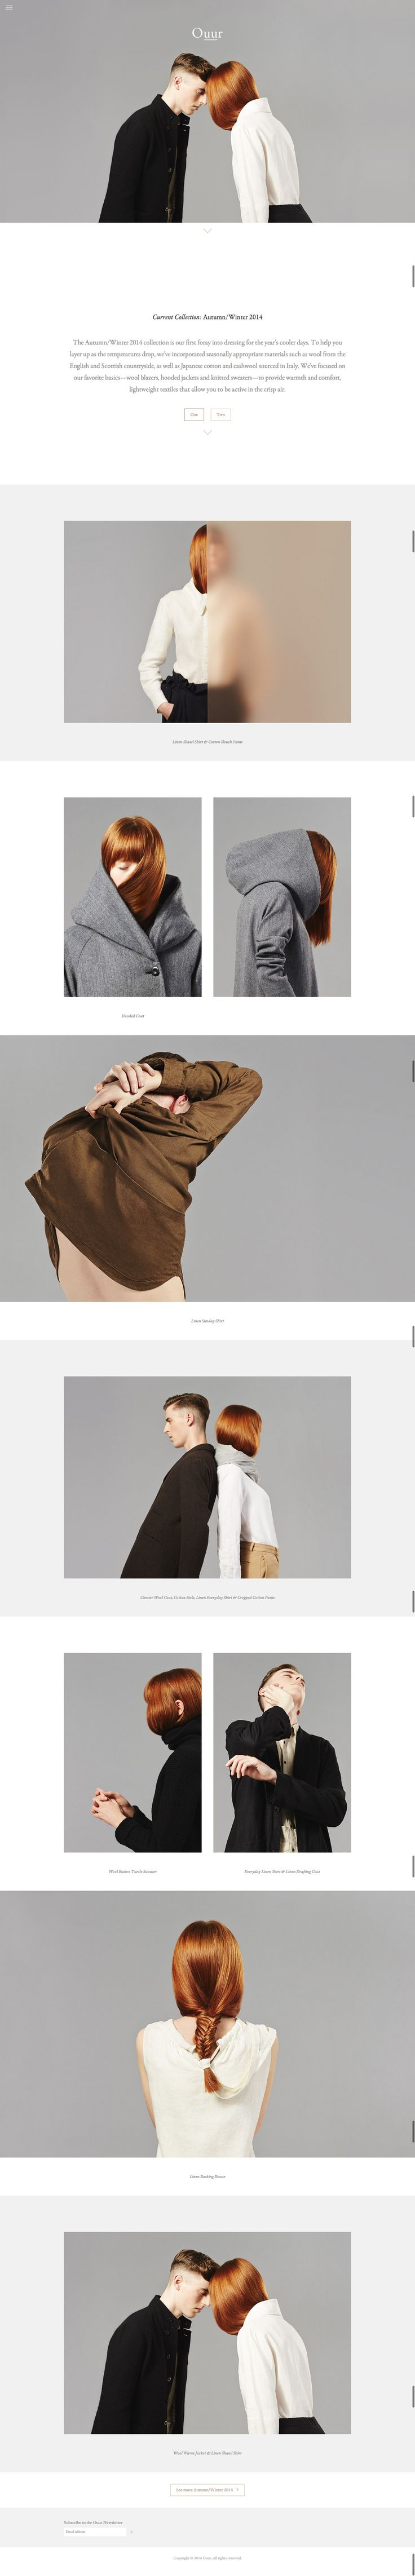 http://www.ouurcollection.com/ layout, photo display